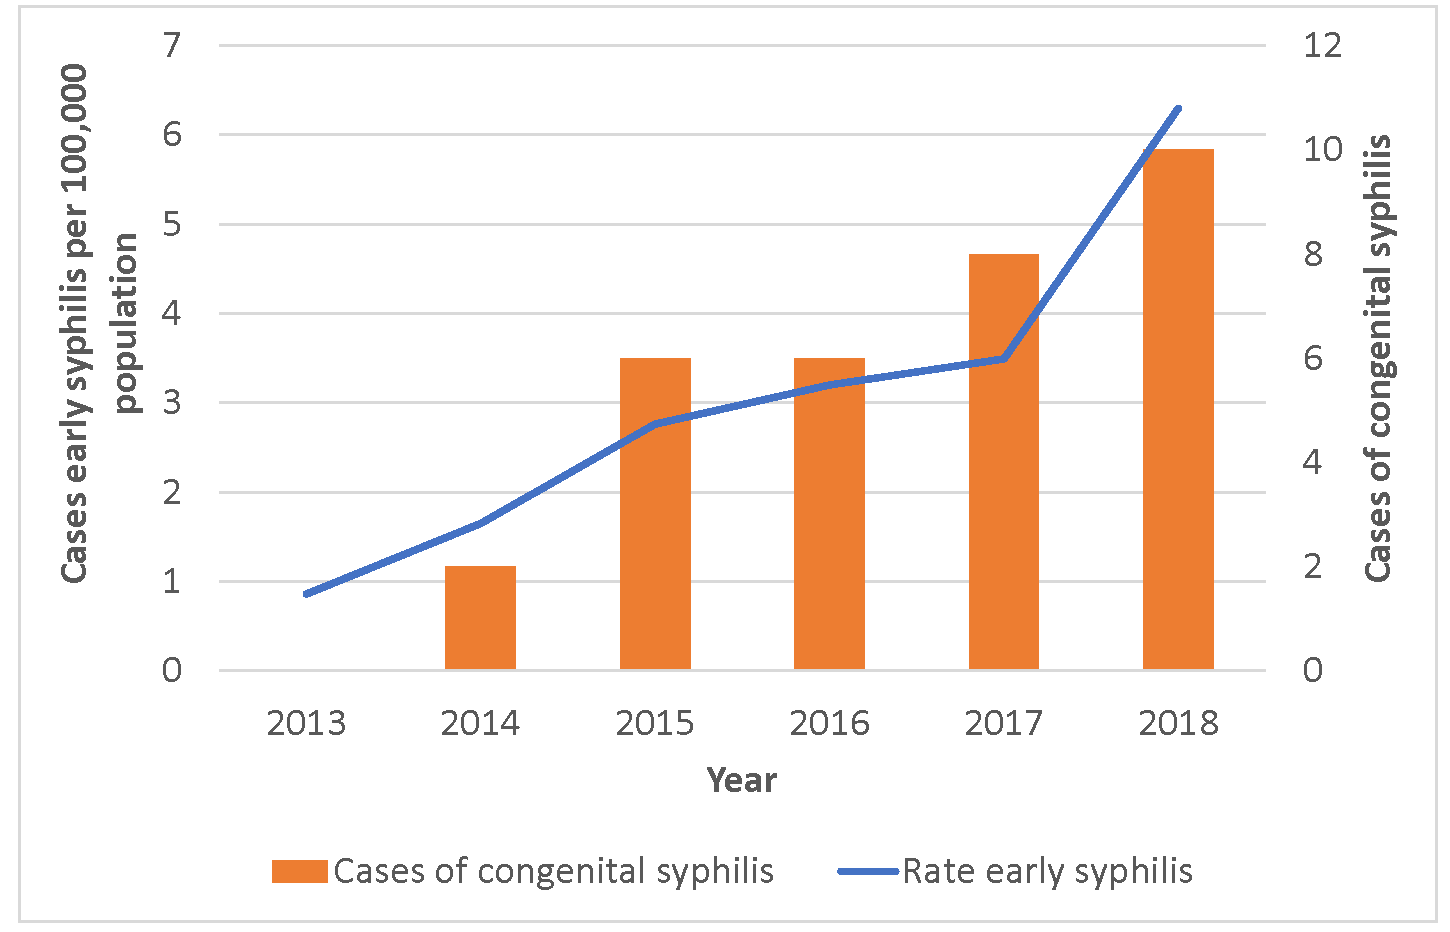 Bar graph: Incidence of early syphilis among women and cases of congenital syphilis, Oregon 2013-2019. Cases and rate going up.